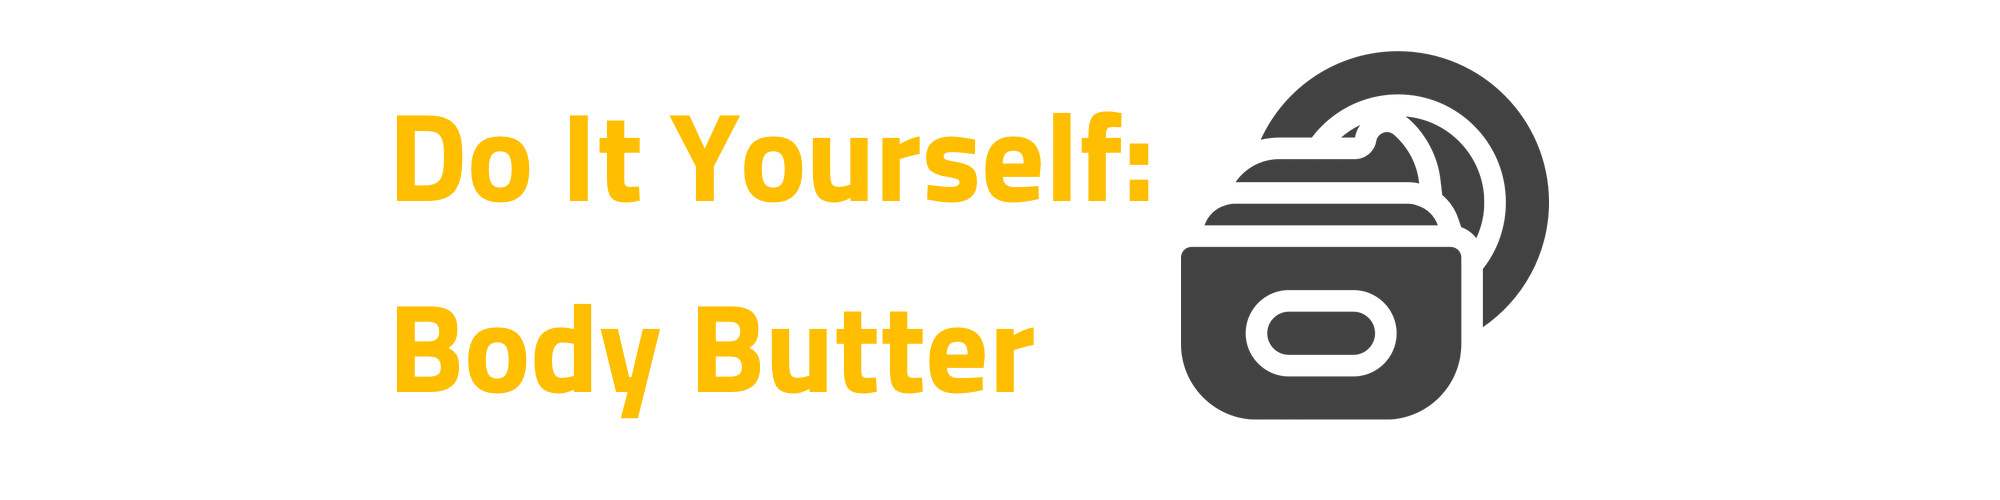 Do it yourself : Body Butters